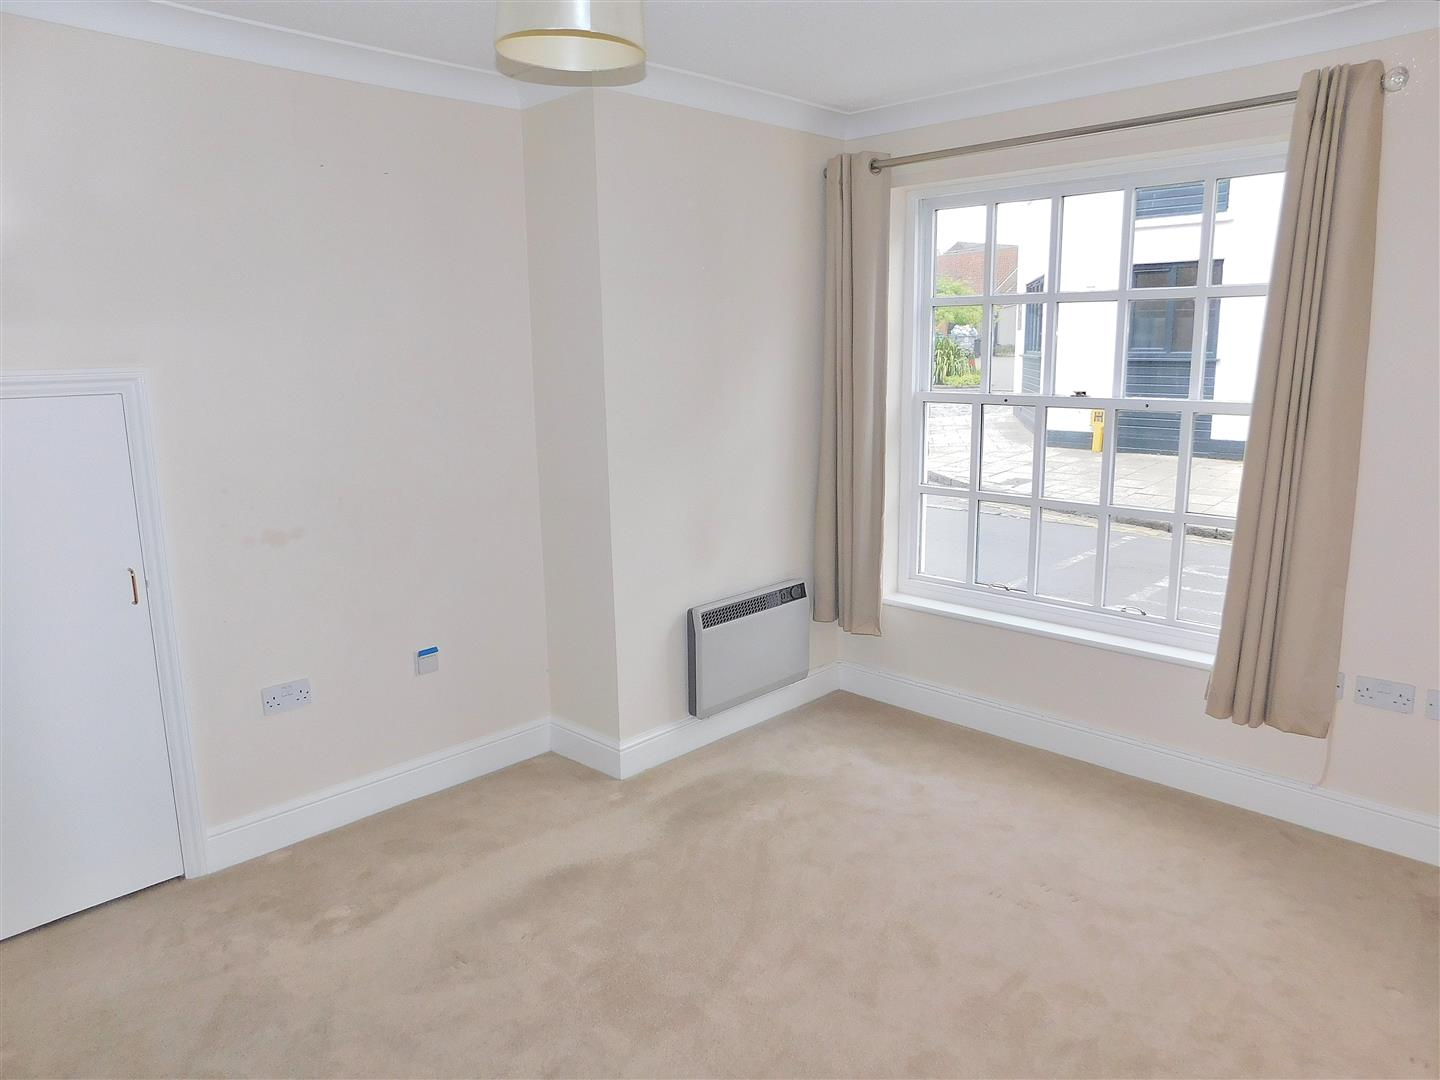 2 bed flat for sale in King's Lynn, PE30 1EG  - Property Image 6